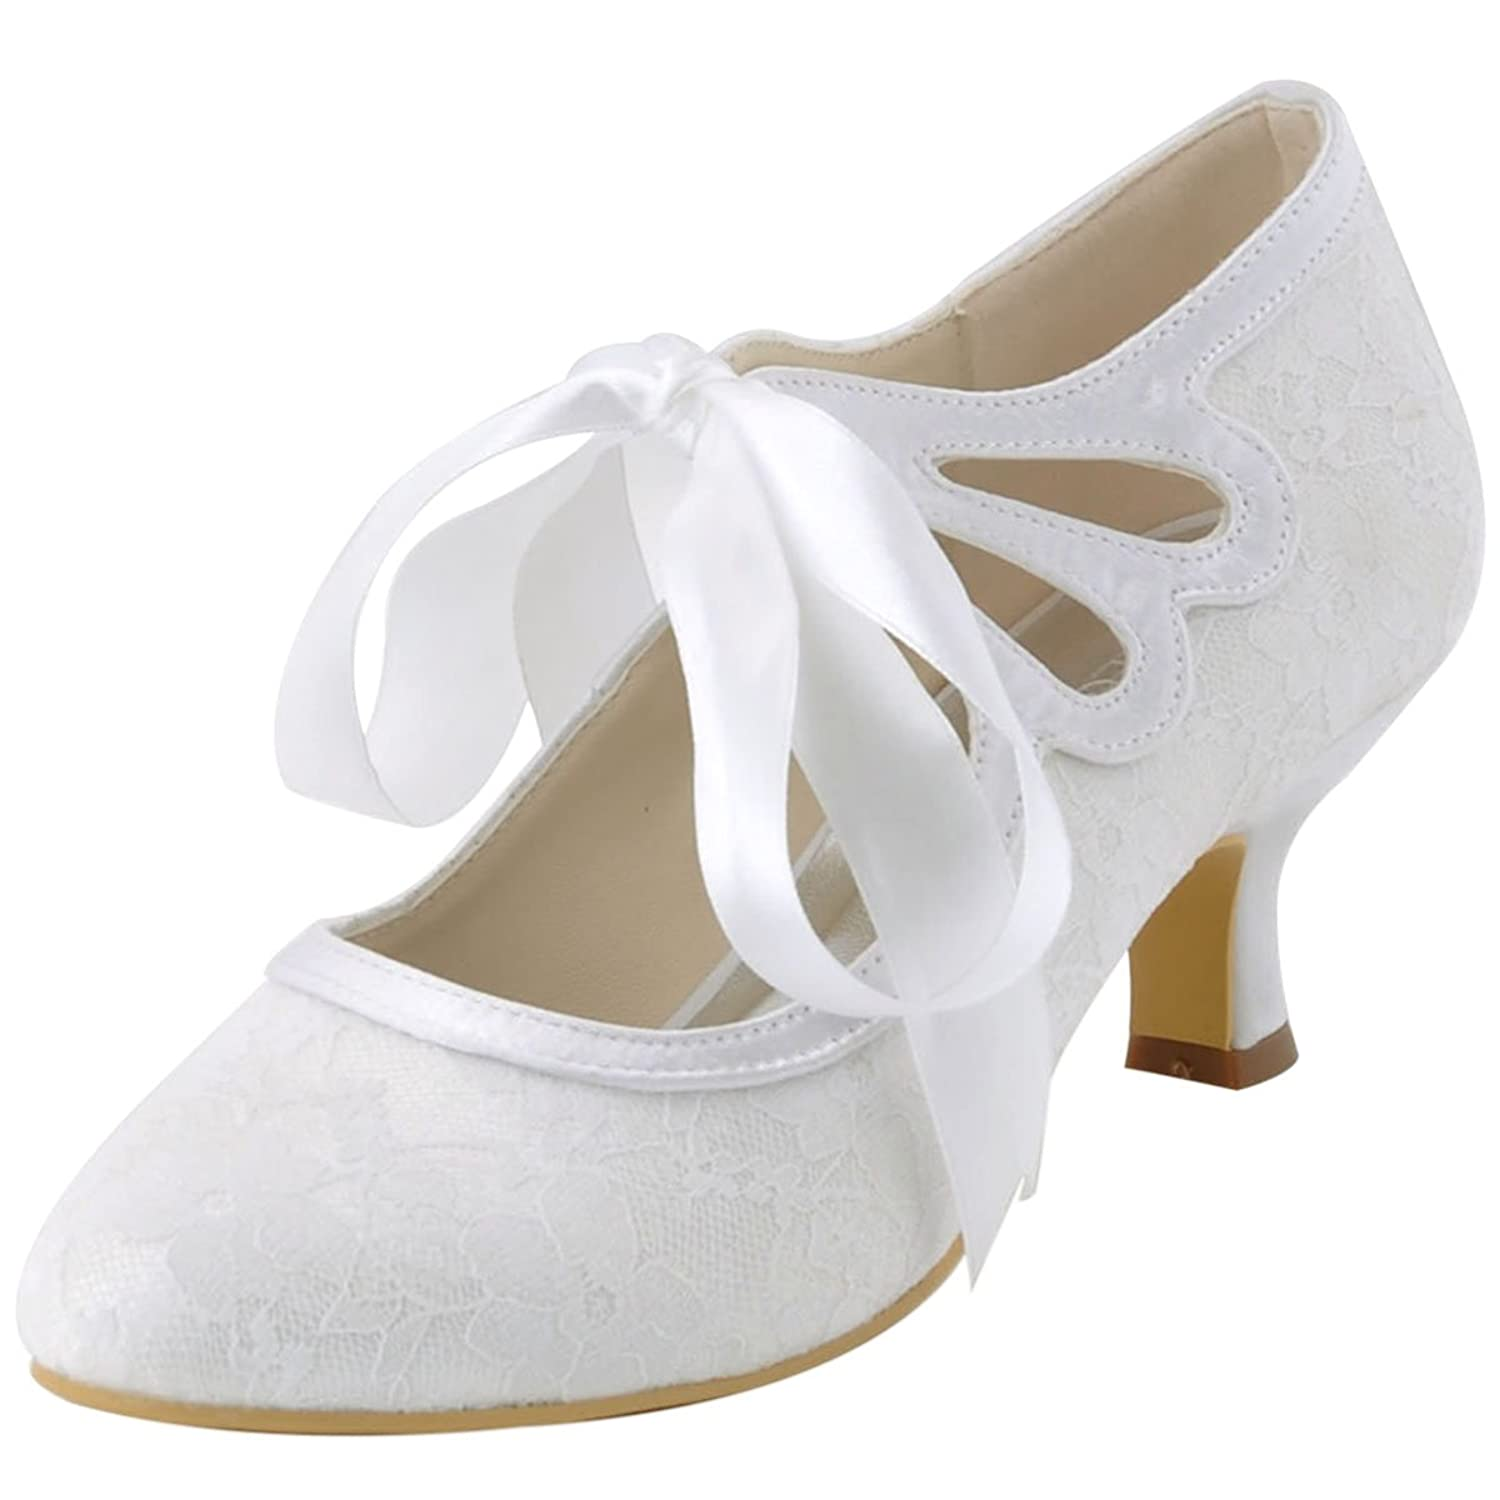 Victorian Wedding Dresses, Shoes, Accessories ElegantPark HC1521 Womens Mary Jane Closed Toe Low Heel Pumps Lace Wedding Dress Shoes $48.95 AT vintagedancer.com